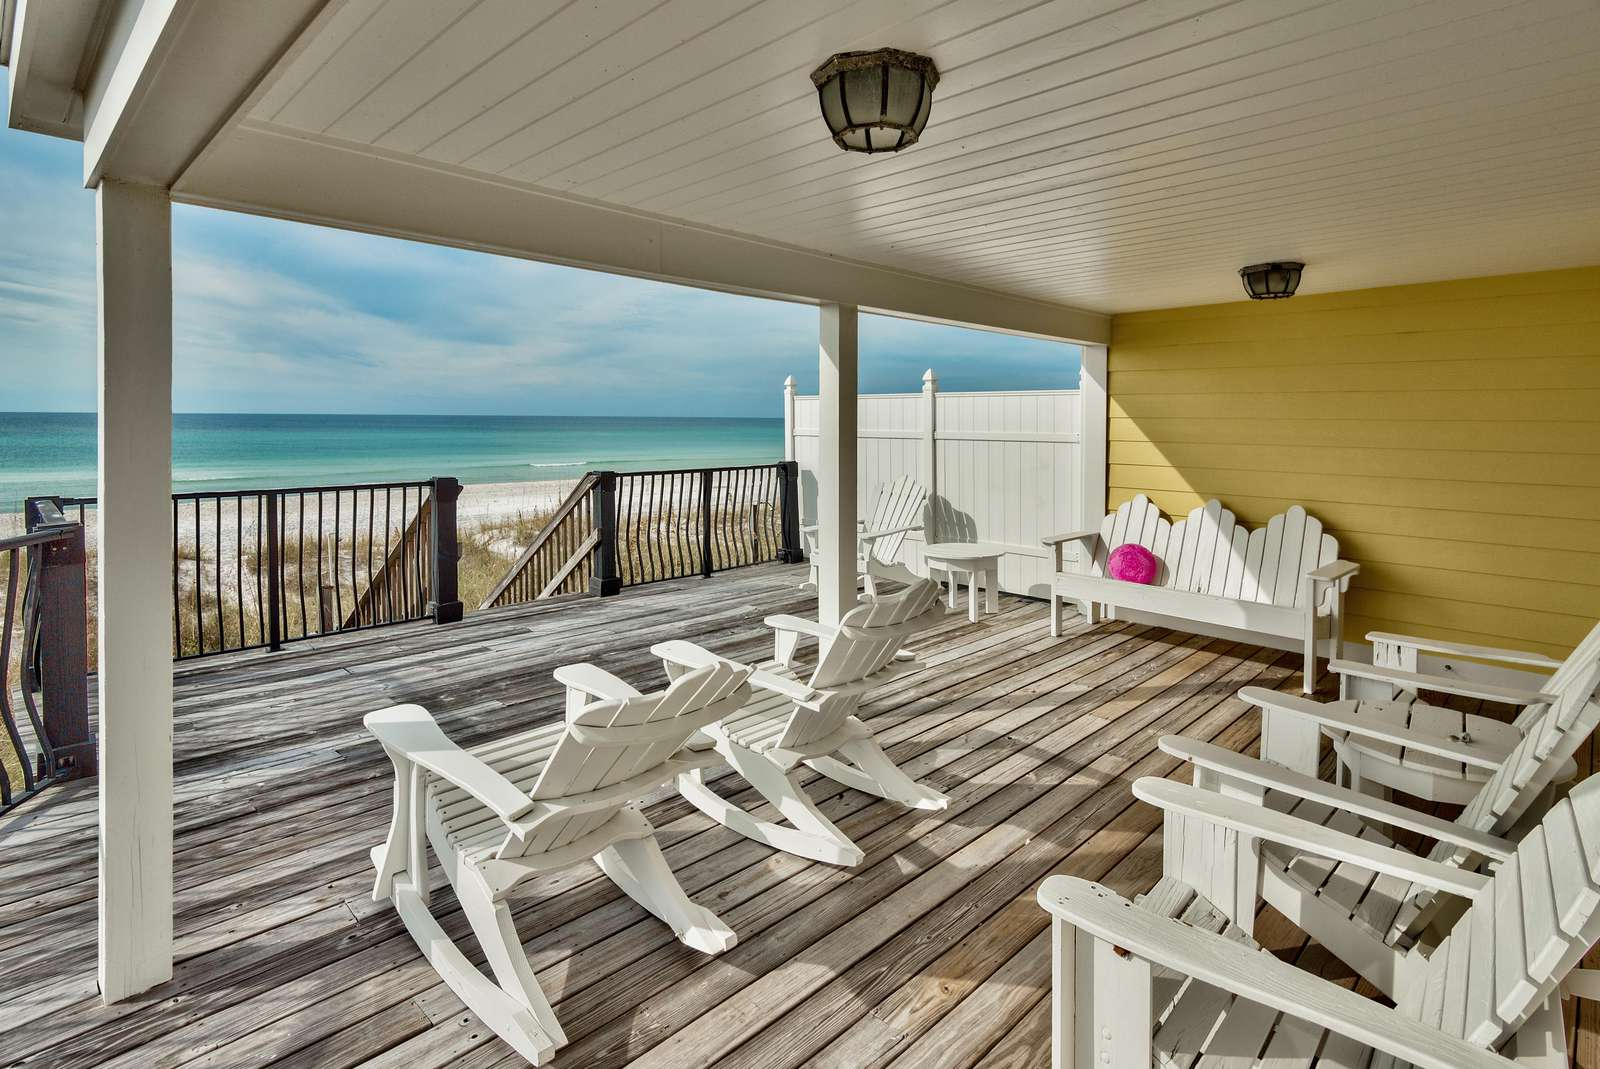 Home Boasts Covered and Uncovered Beachfront Decks! Very Spacious!